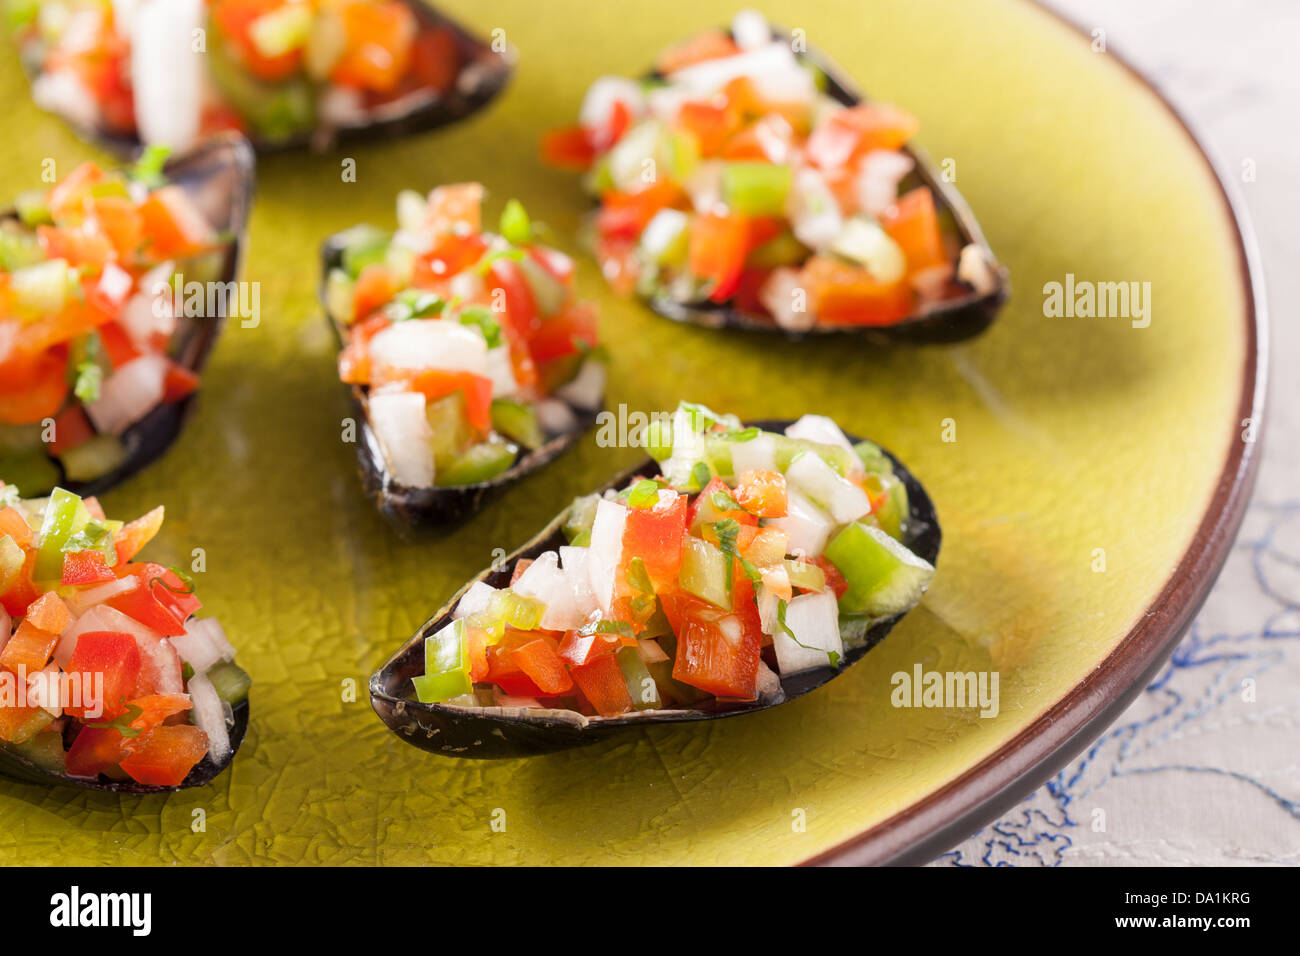 Steamed mussels with vegetable mince on a green dish Stock Photo